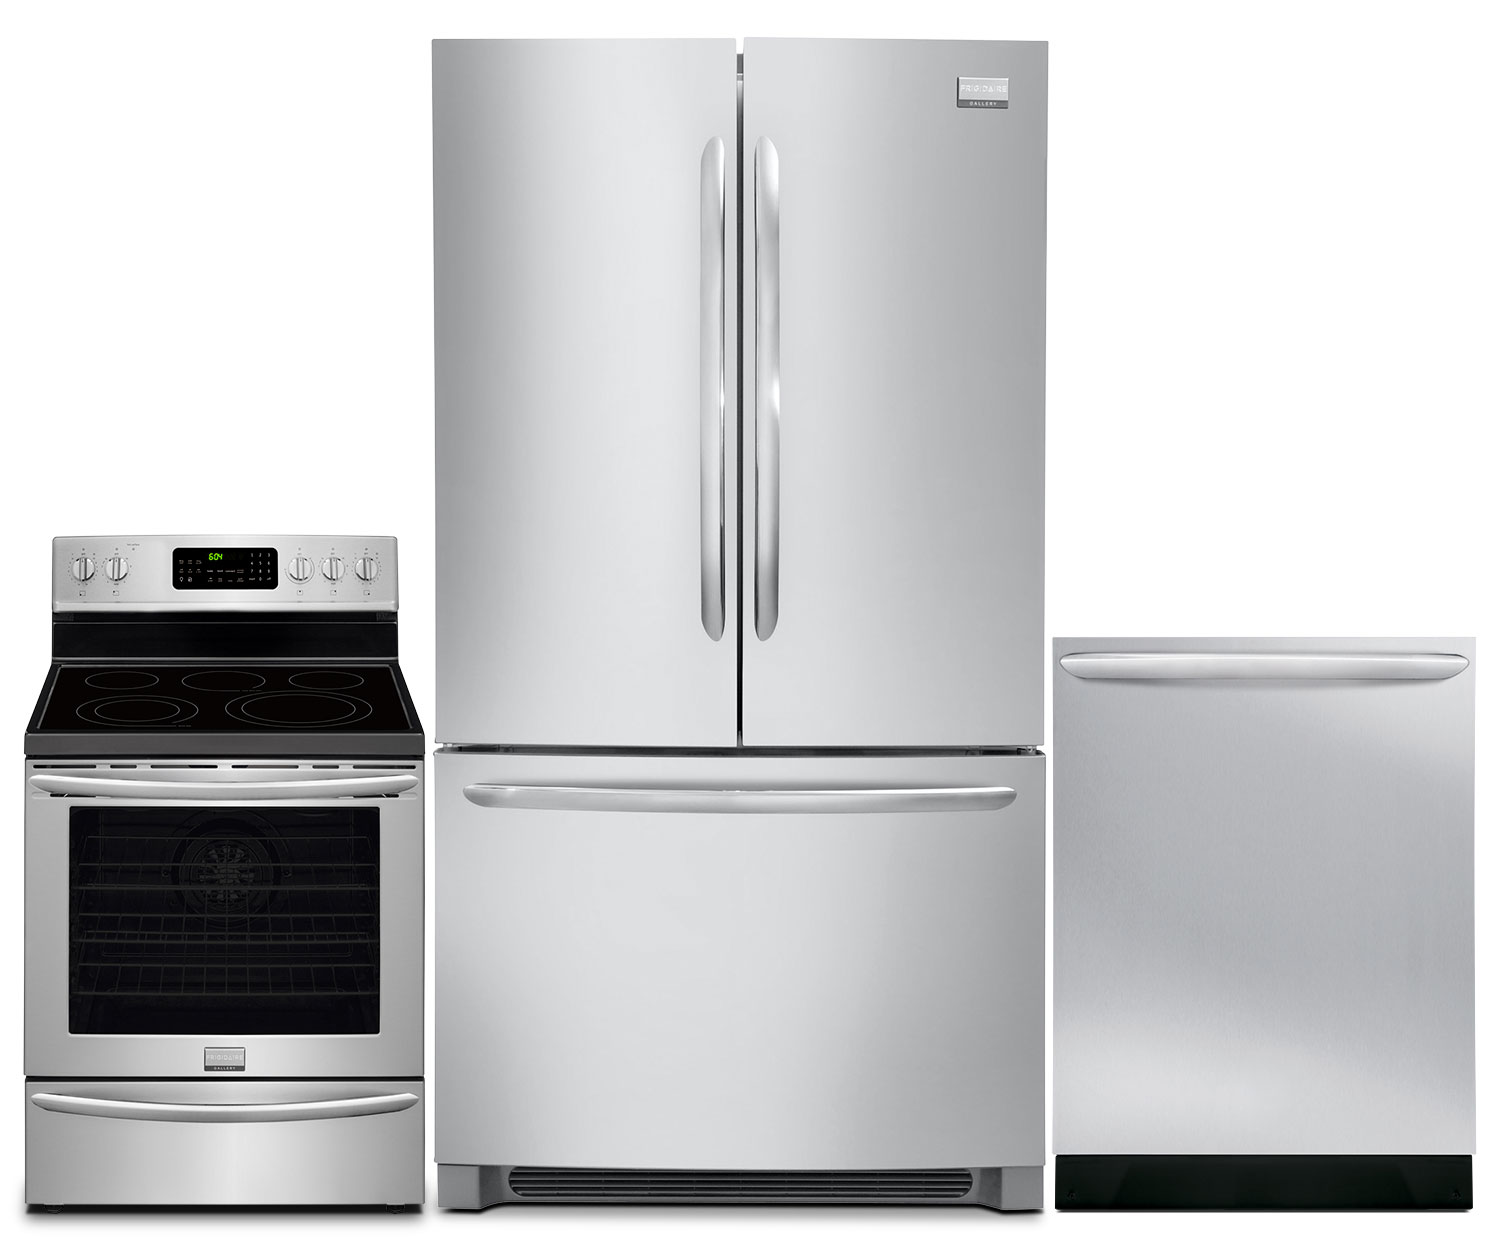 Frigidaire Gallery 23 Cu. Ft. Refrigerator, 5.8 Cu. Ft. Range and Dishwasher – Stainless Steel